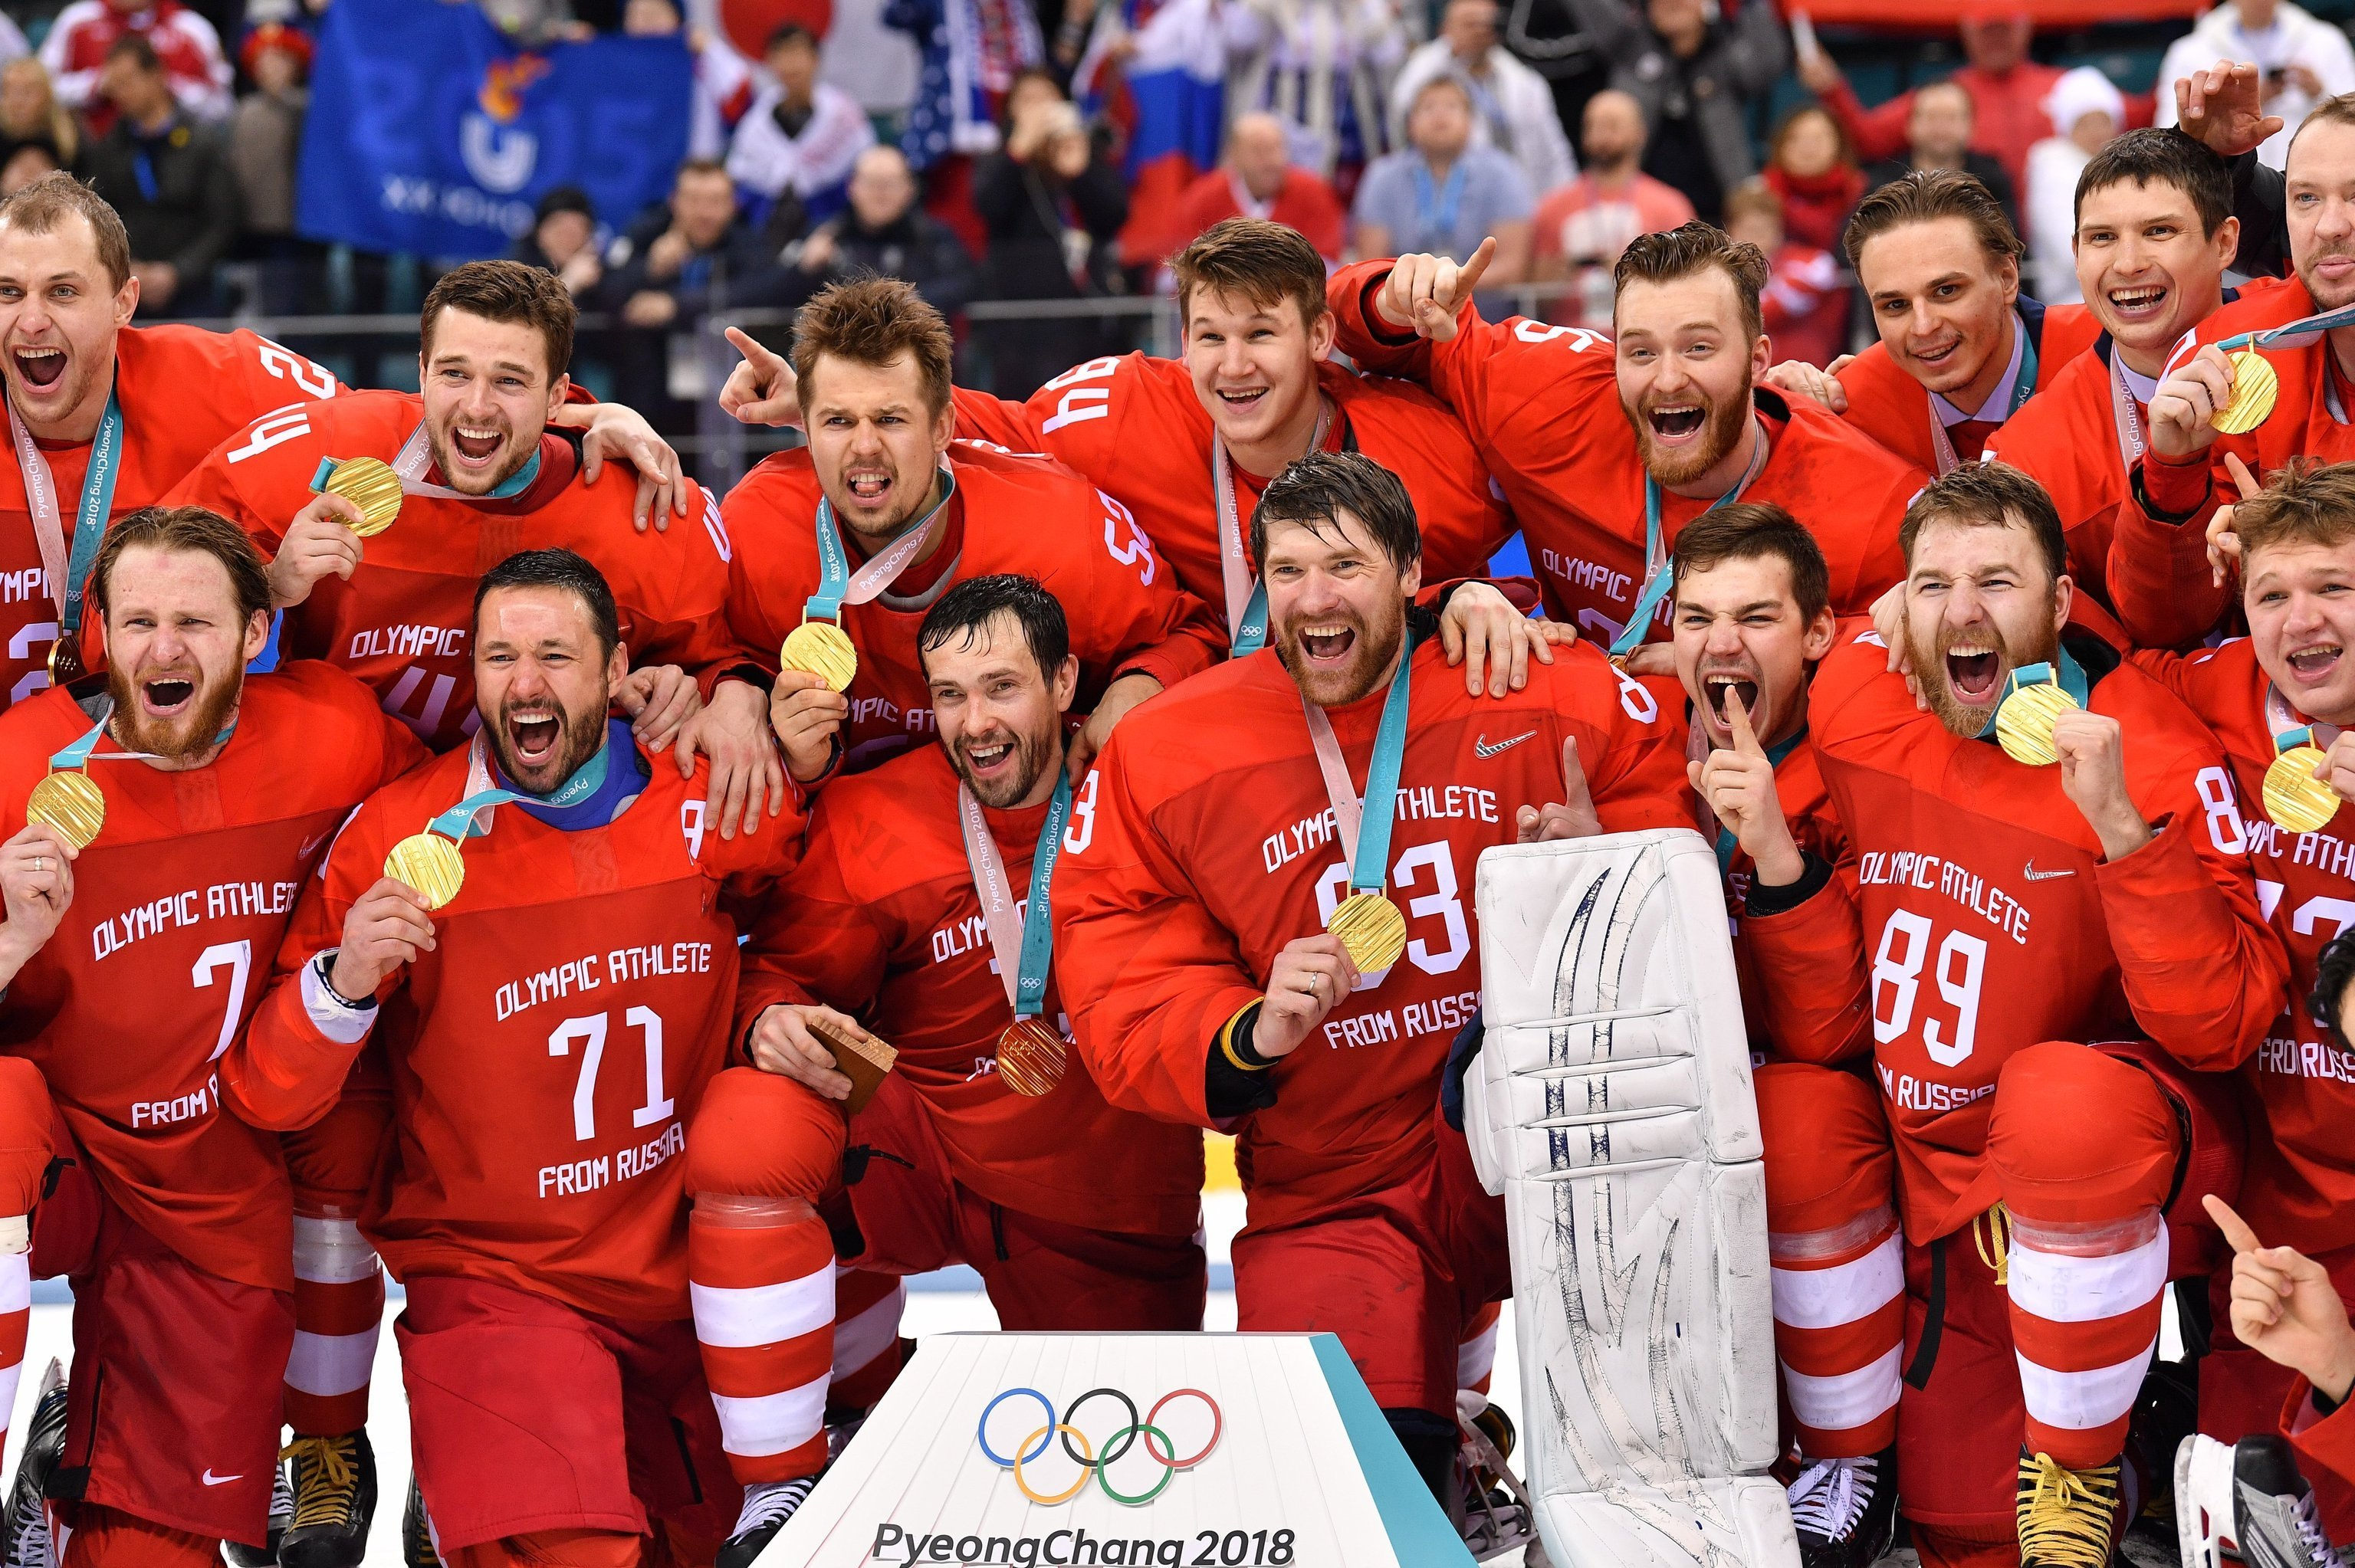 From left, front: Vladislav Gavrikov (Russia), Ivan Telegin (Russia), Ilya Kovalchuk (Russia), Pavel Datsyuk (Russia) receive gold medals at the medal ceremony of the men's ice hockey tournament at the 2018 Winter Olympics. From right: Kirill Kaprizon (Russia) and Vasily Koshechkin (Russia)